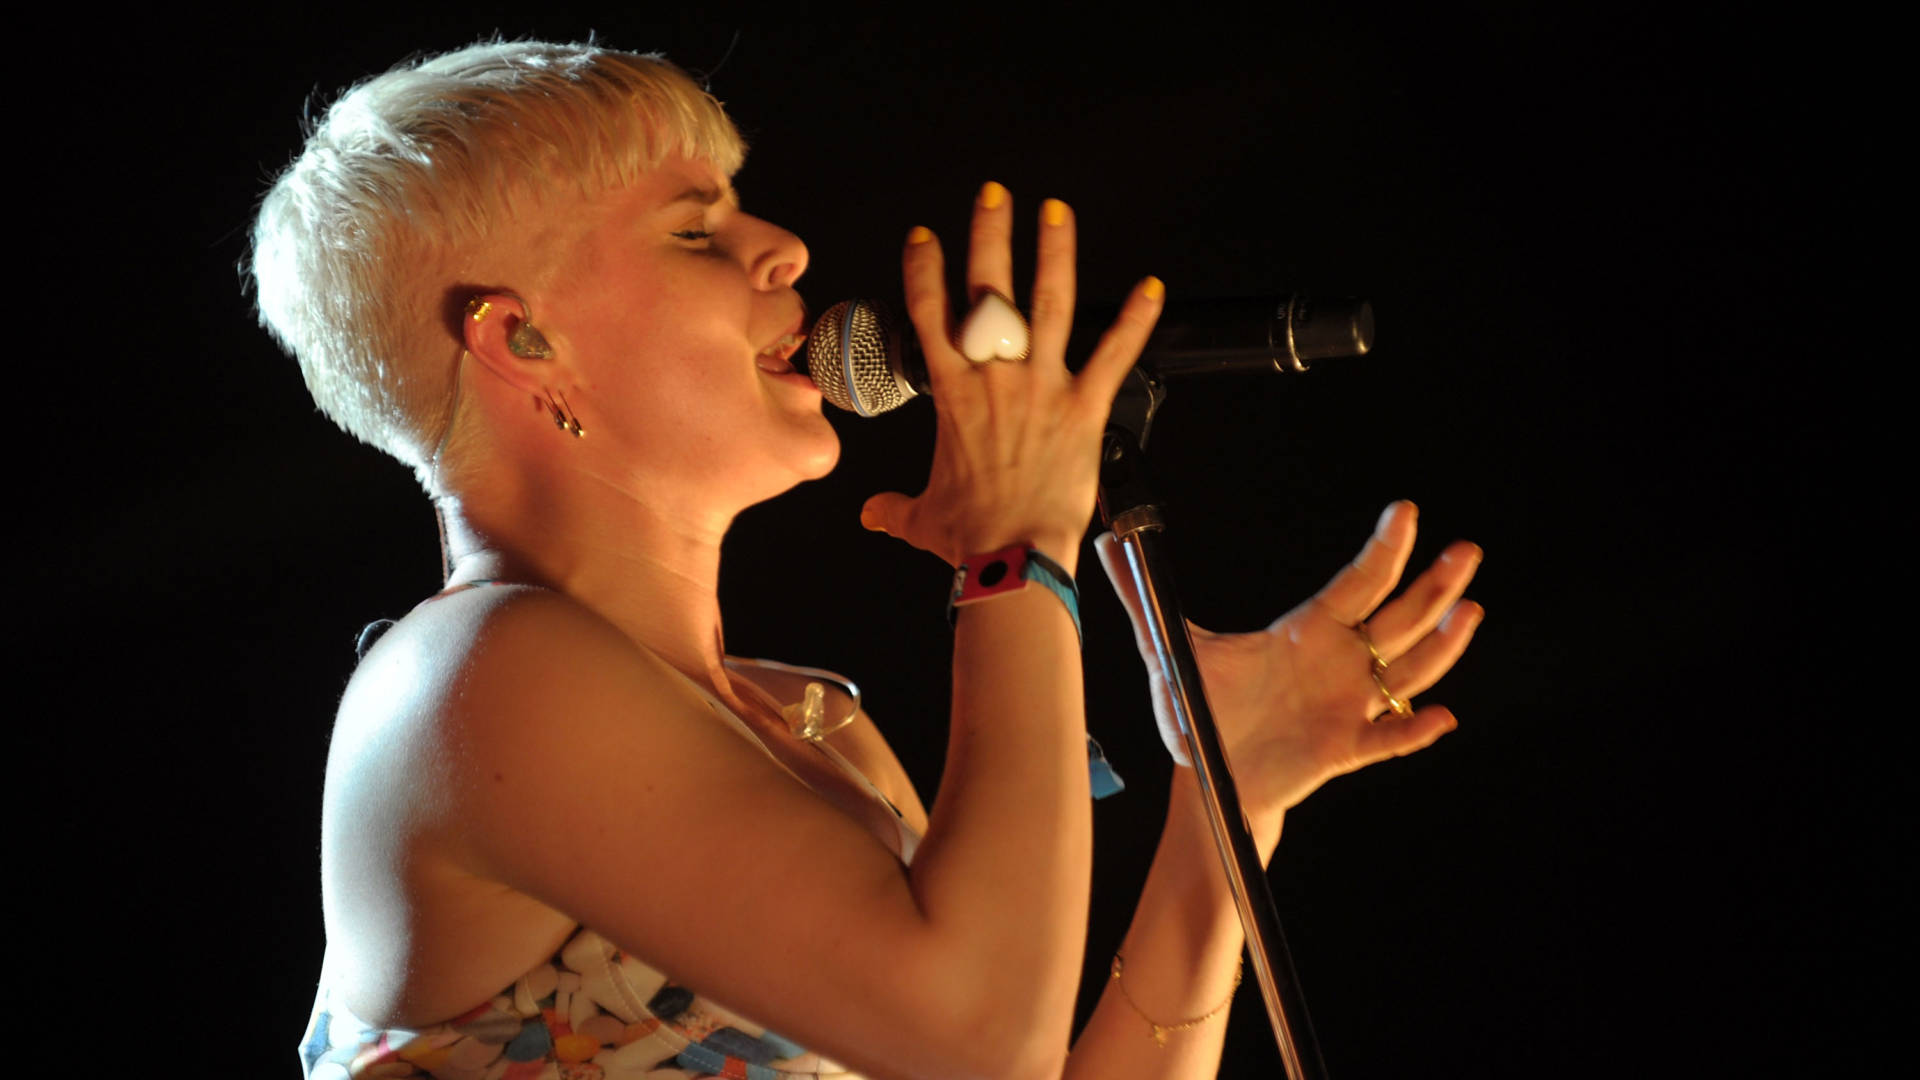 Robyn at Coachella in 2011.  Photo by Charley Gallay/Getty Images